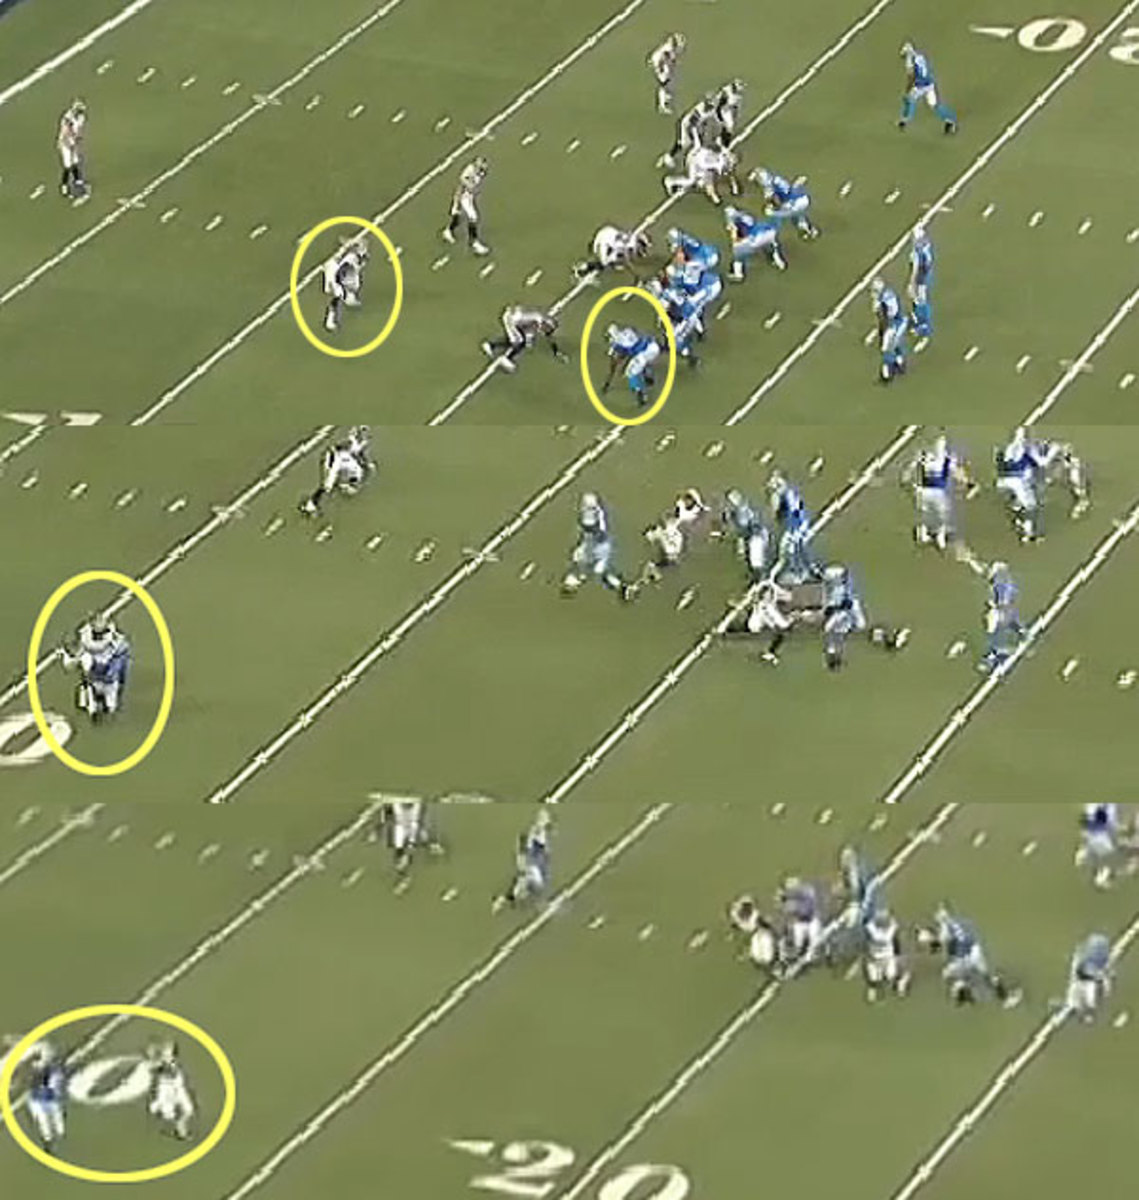 Stafford misses a linebacker cheating to the seam, and pays the price.